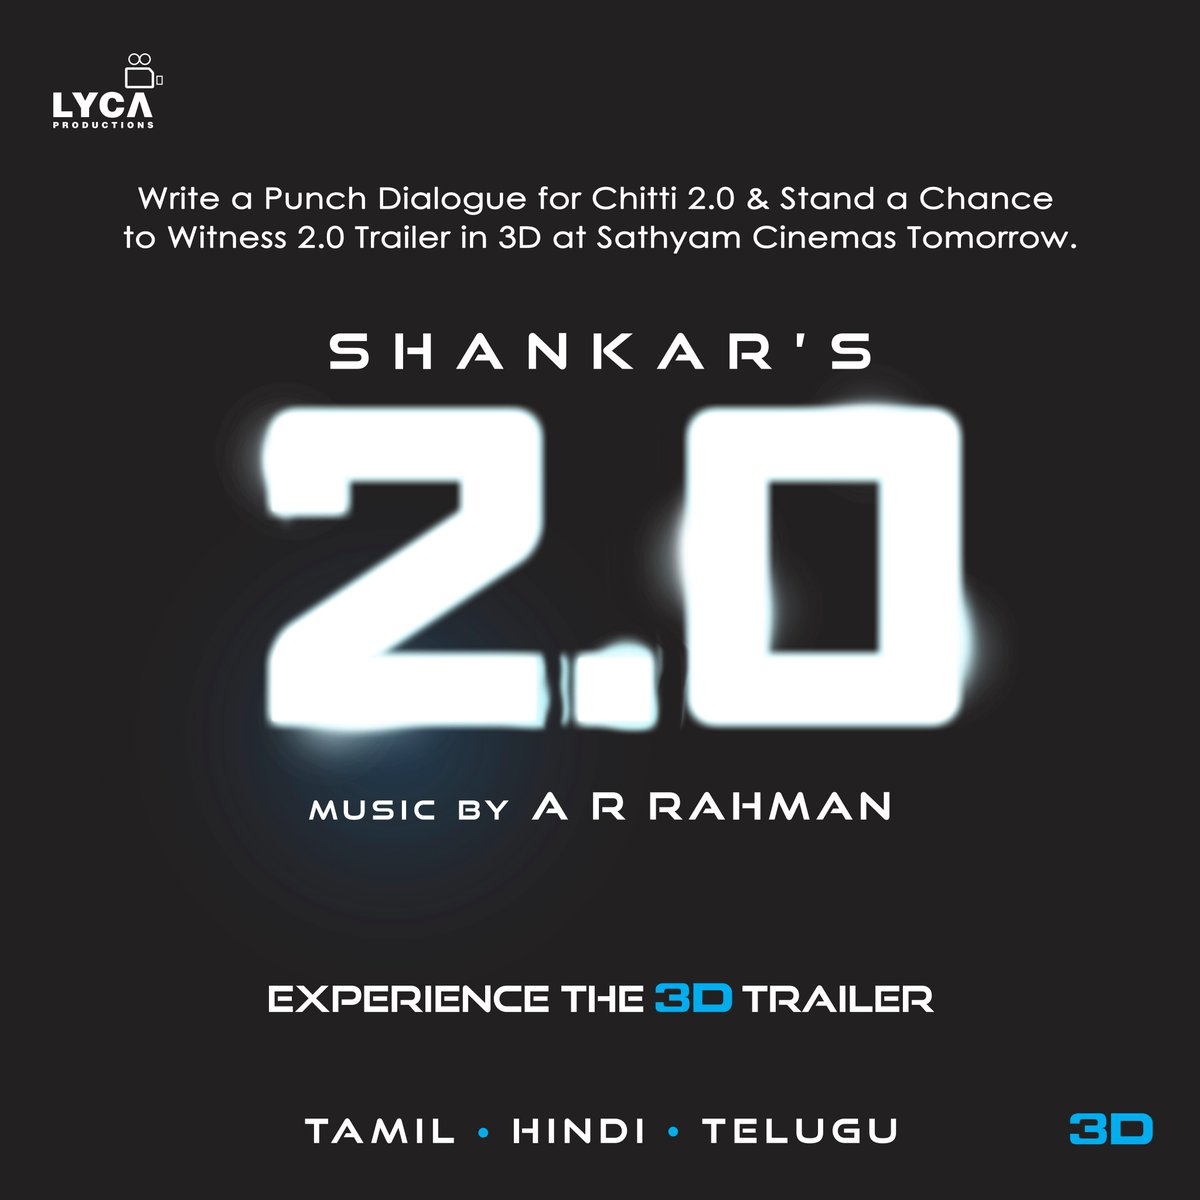 Want To Witness 2 0 Trailer In 3D ? Here Is Your Chance